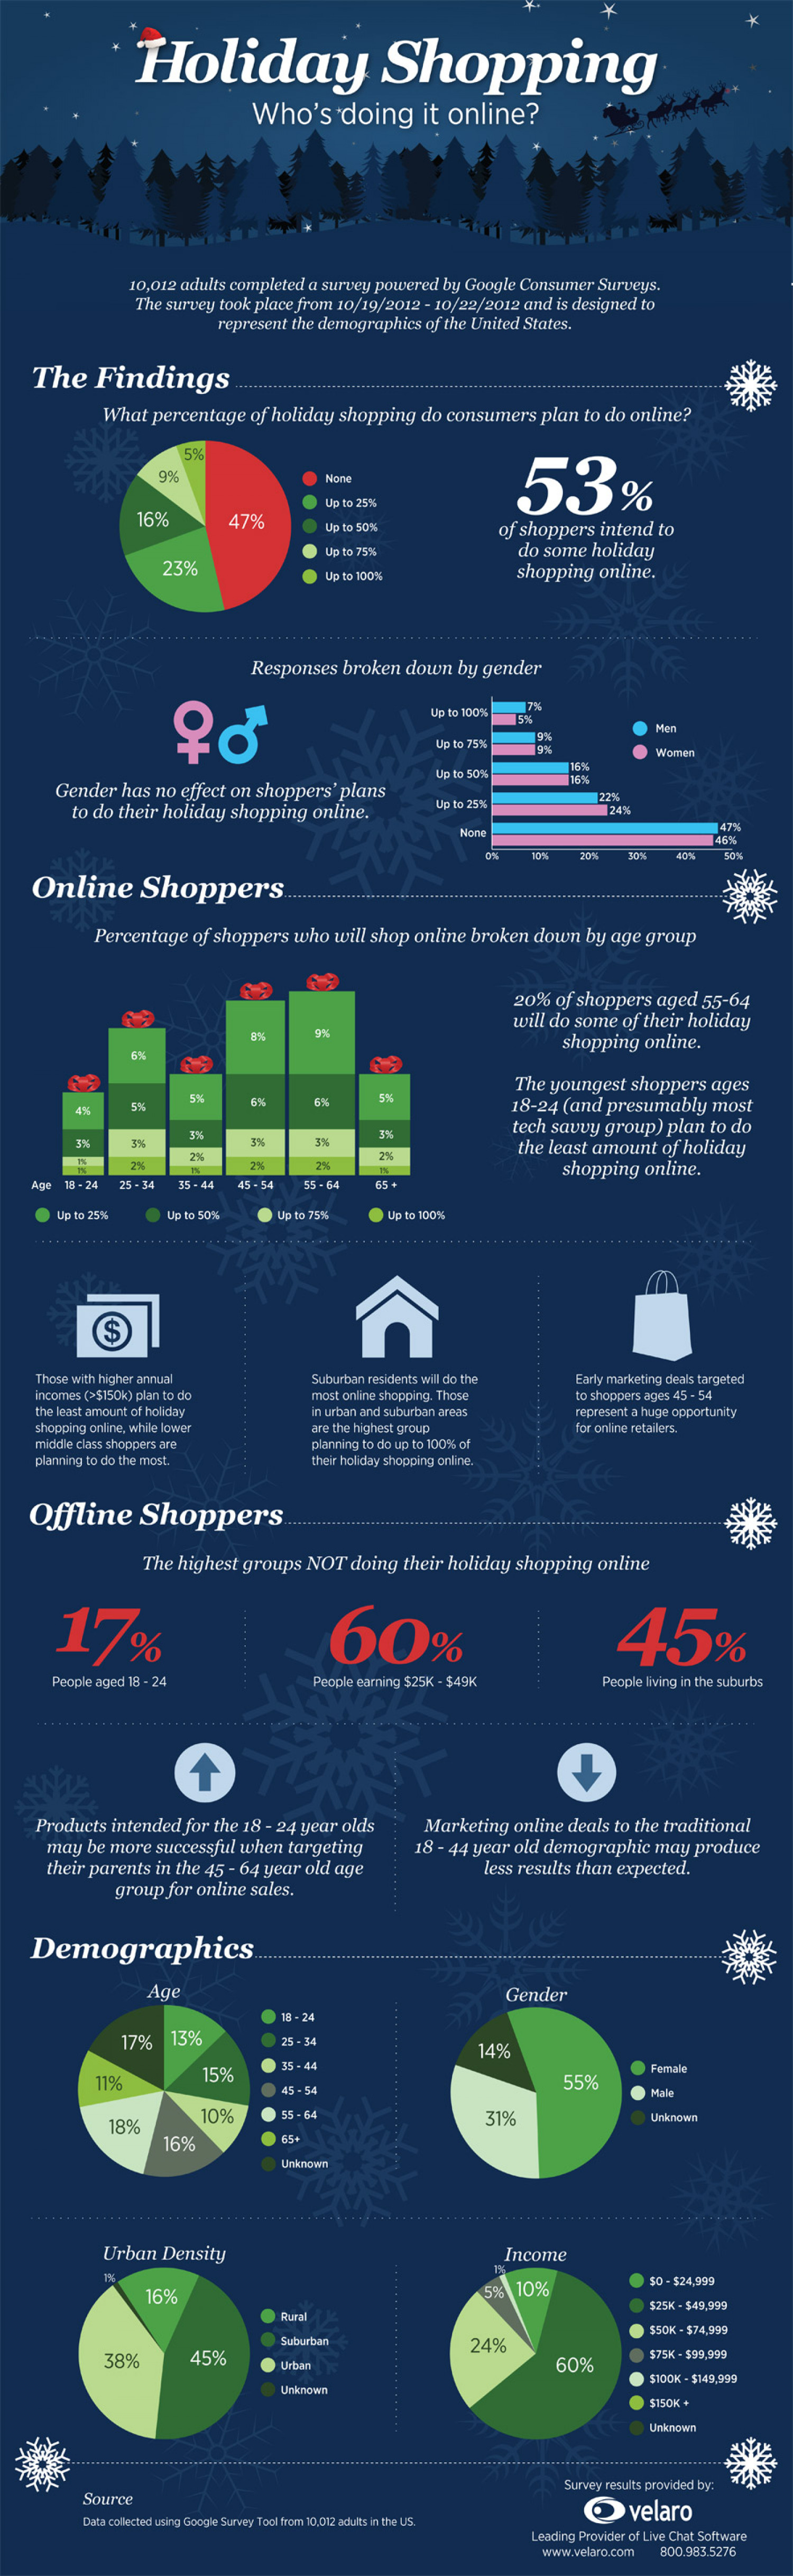 Holiday Shopping: Who's Doing It Online? Infographic